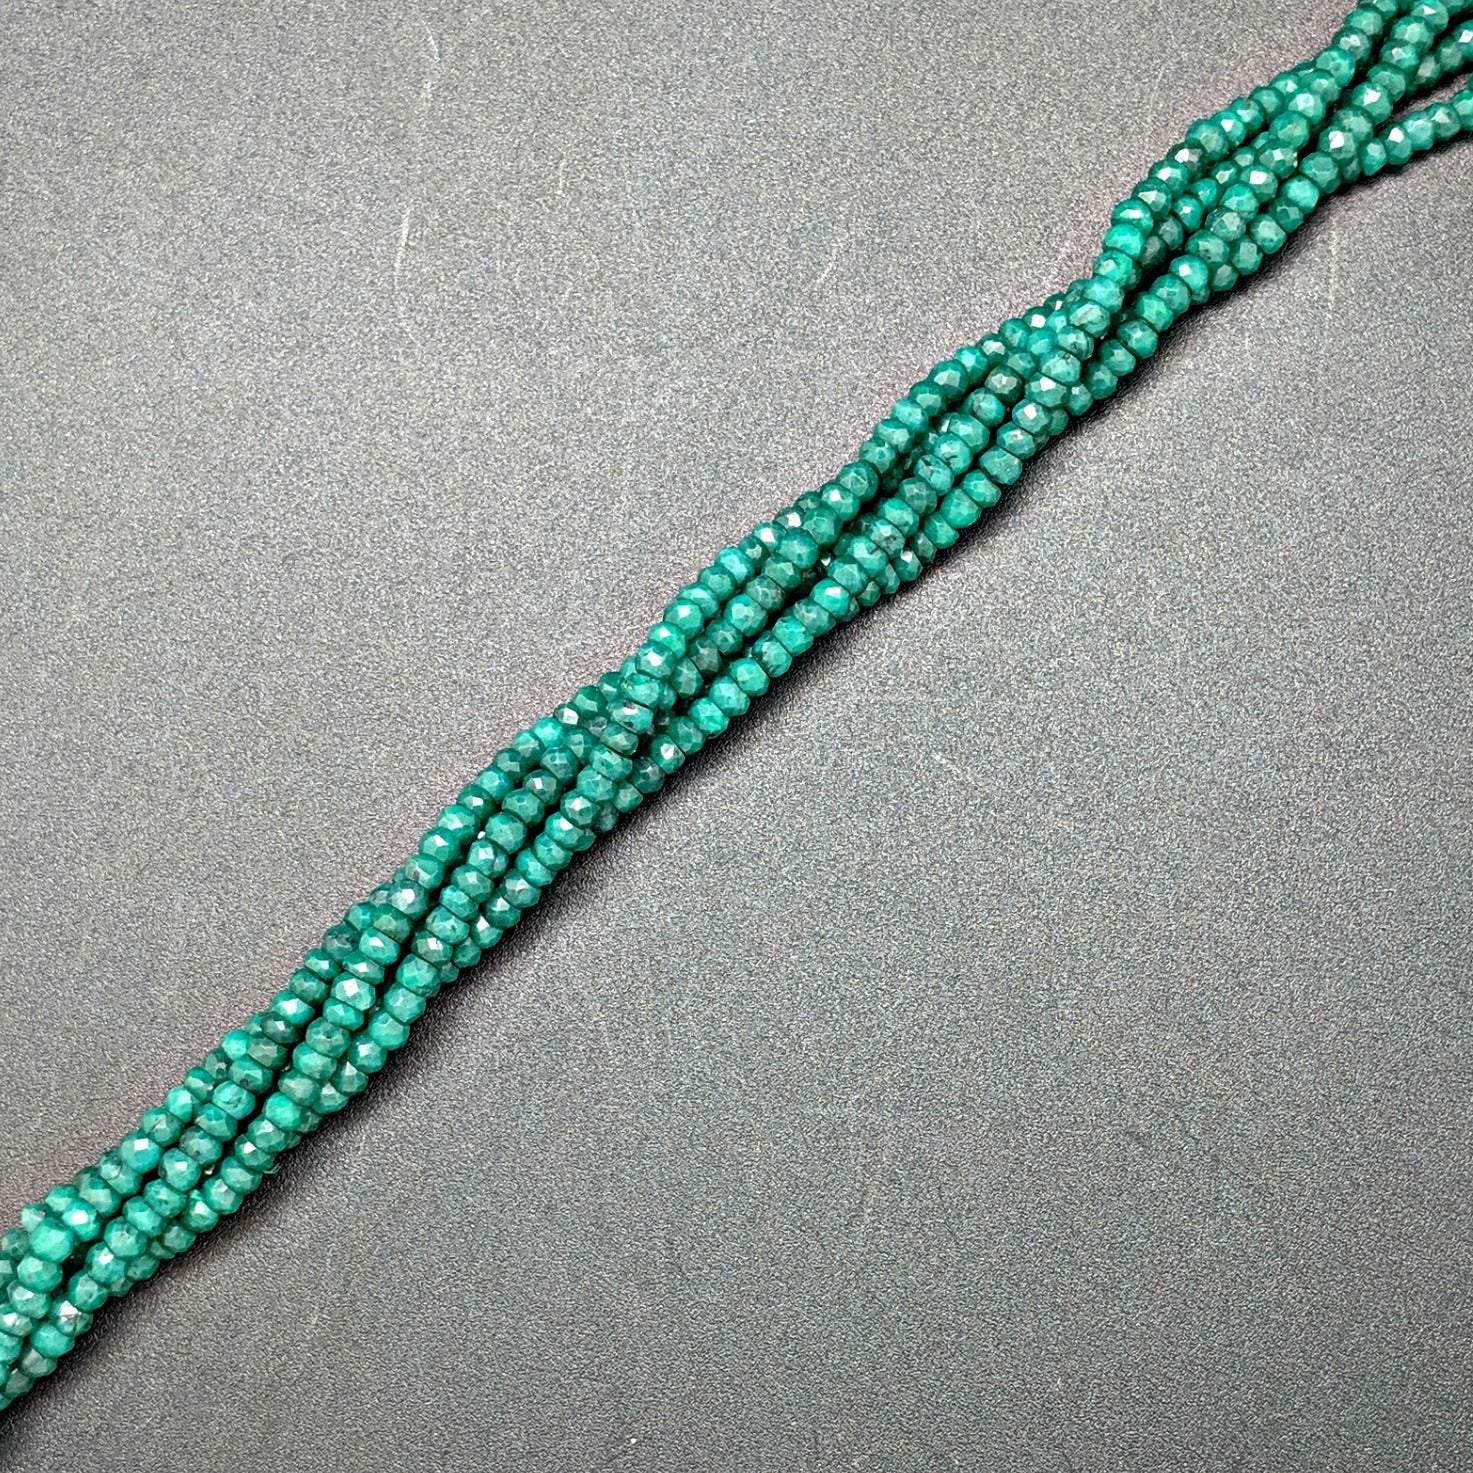 Emerald 4mm Rondelle